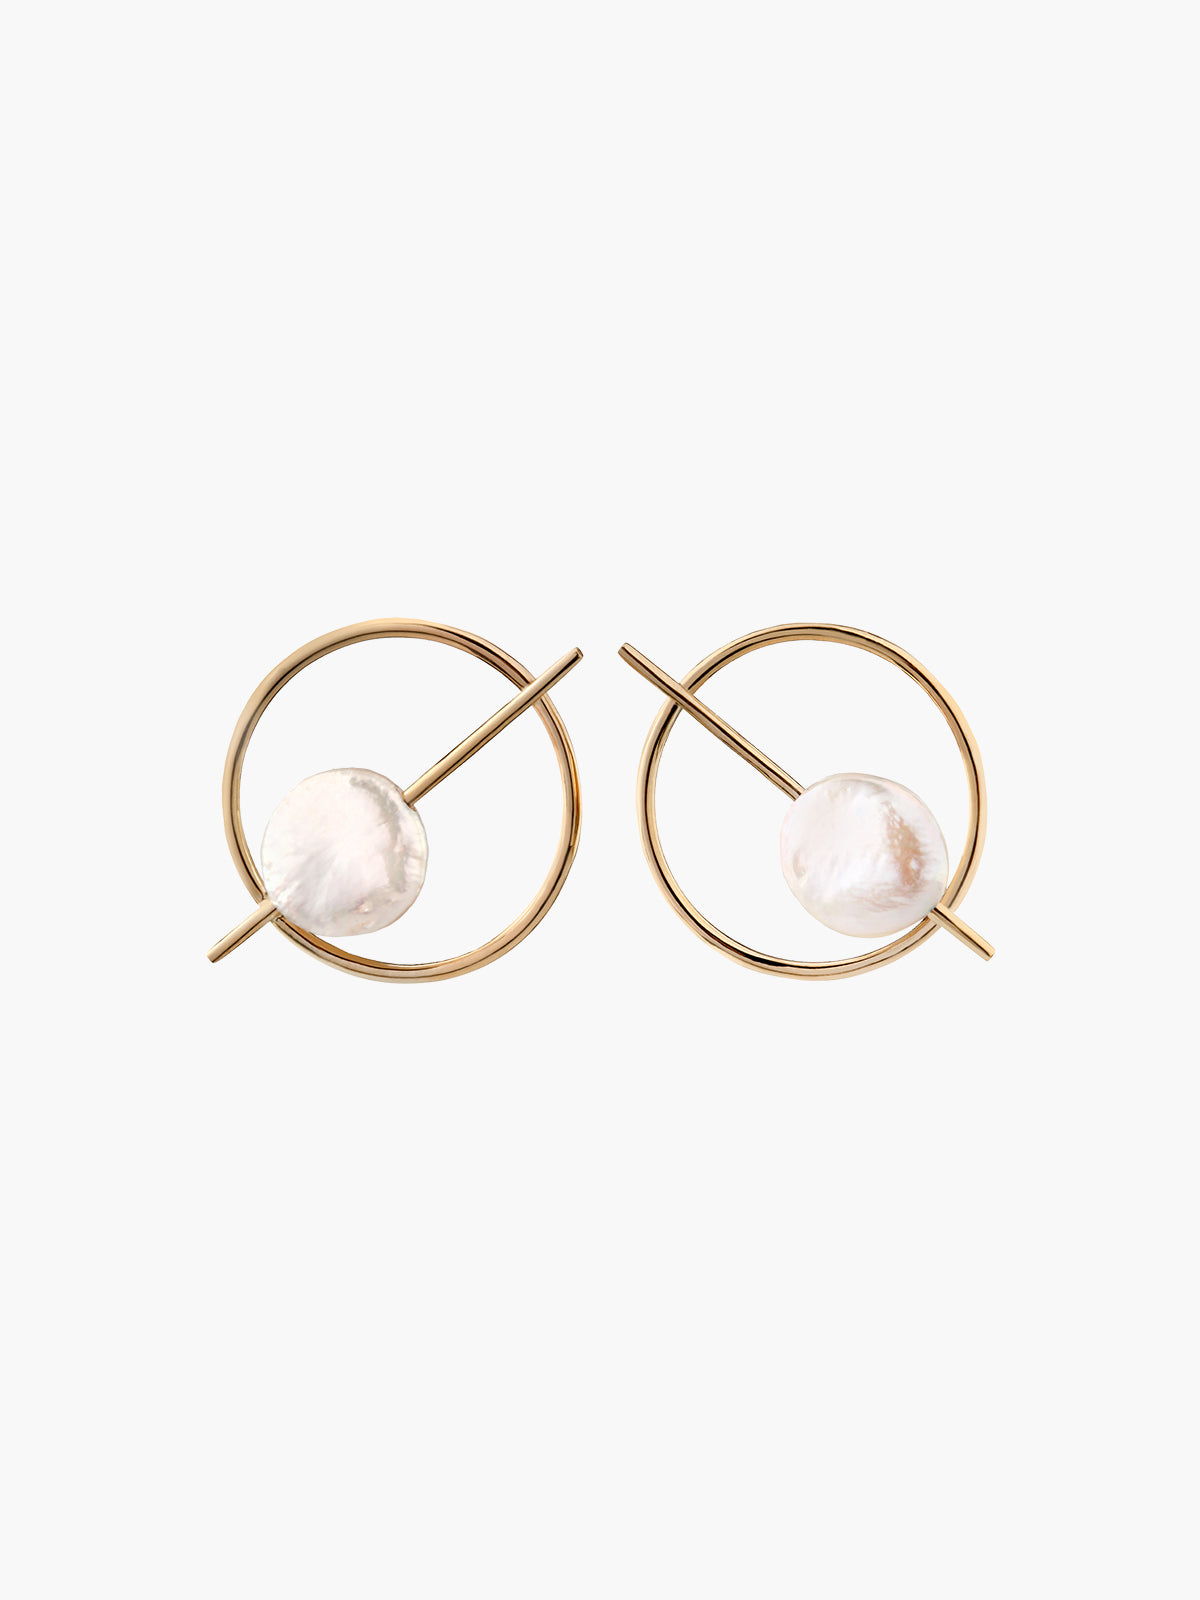 Exclusive Aquilo Pearl Earrings Exclusive Aquilo Pearl Earrings